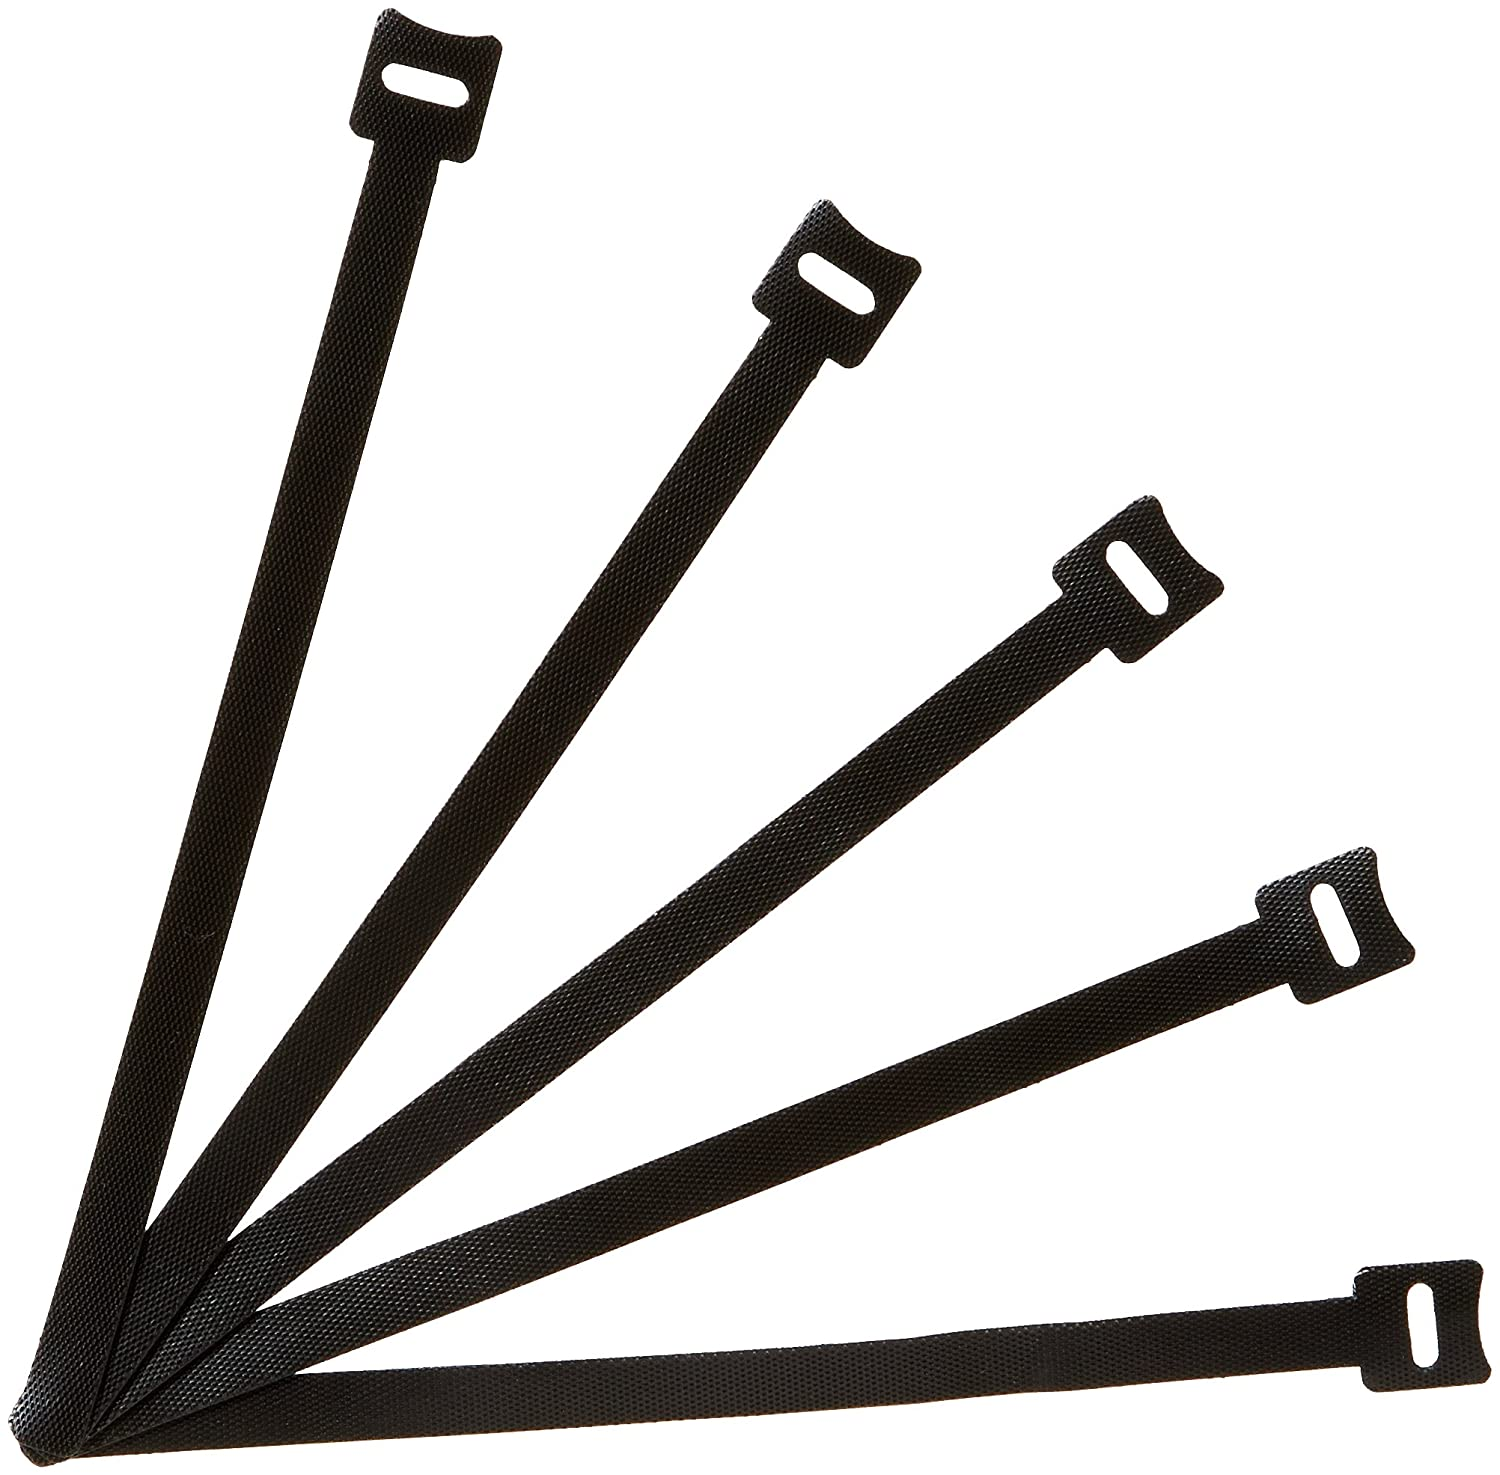 AmazonBasics Reusable Cable Ties 8 Inch 50 Pack